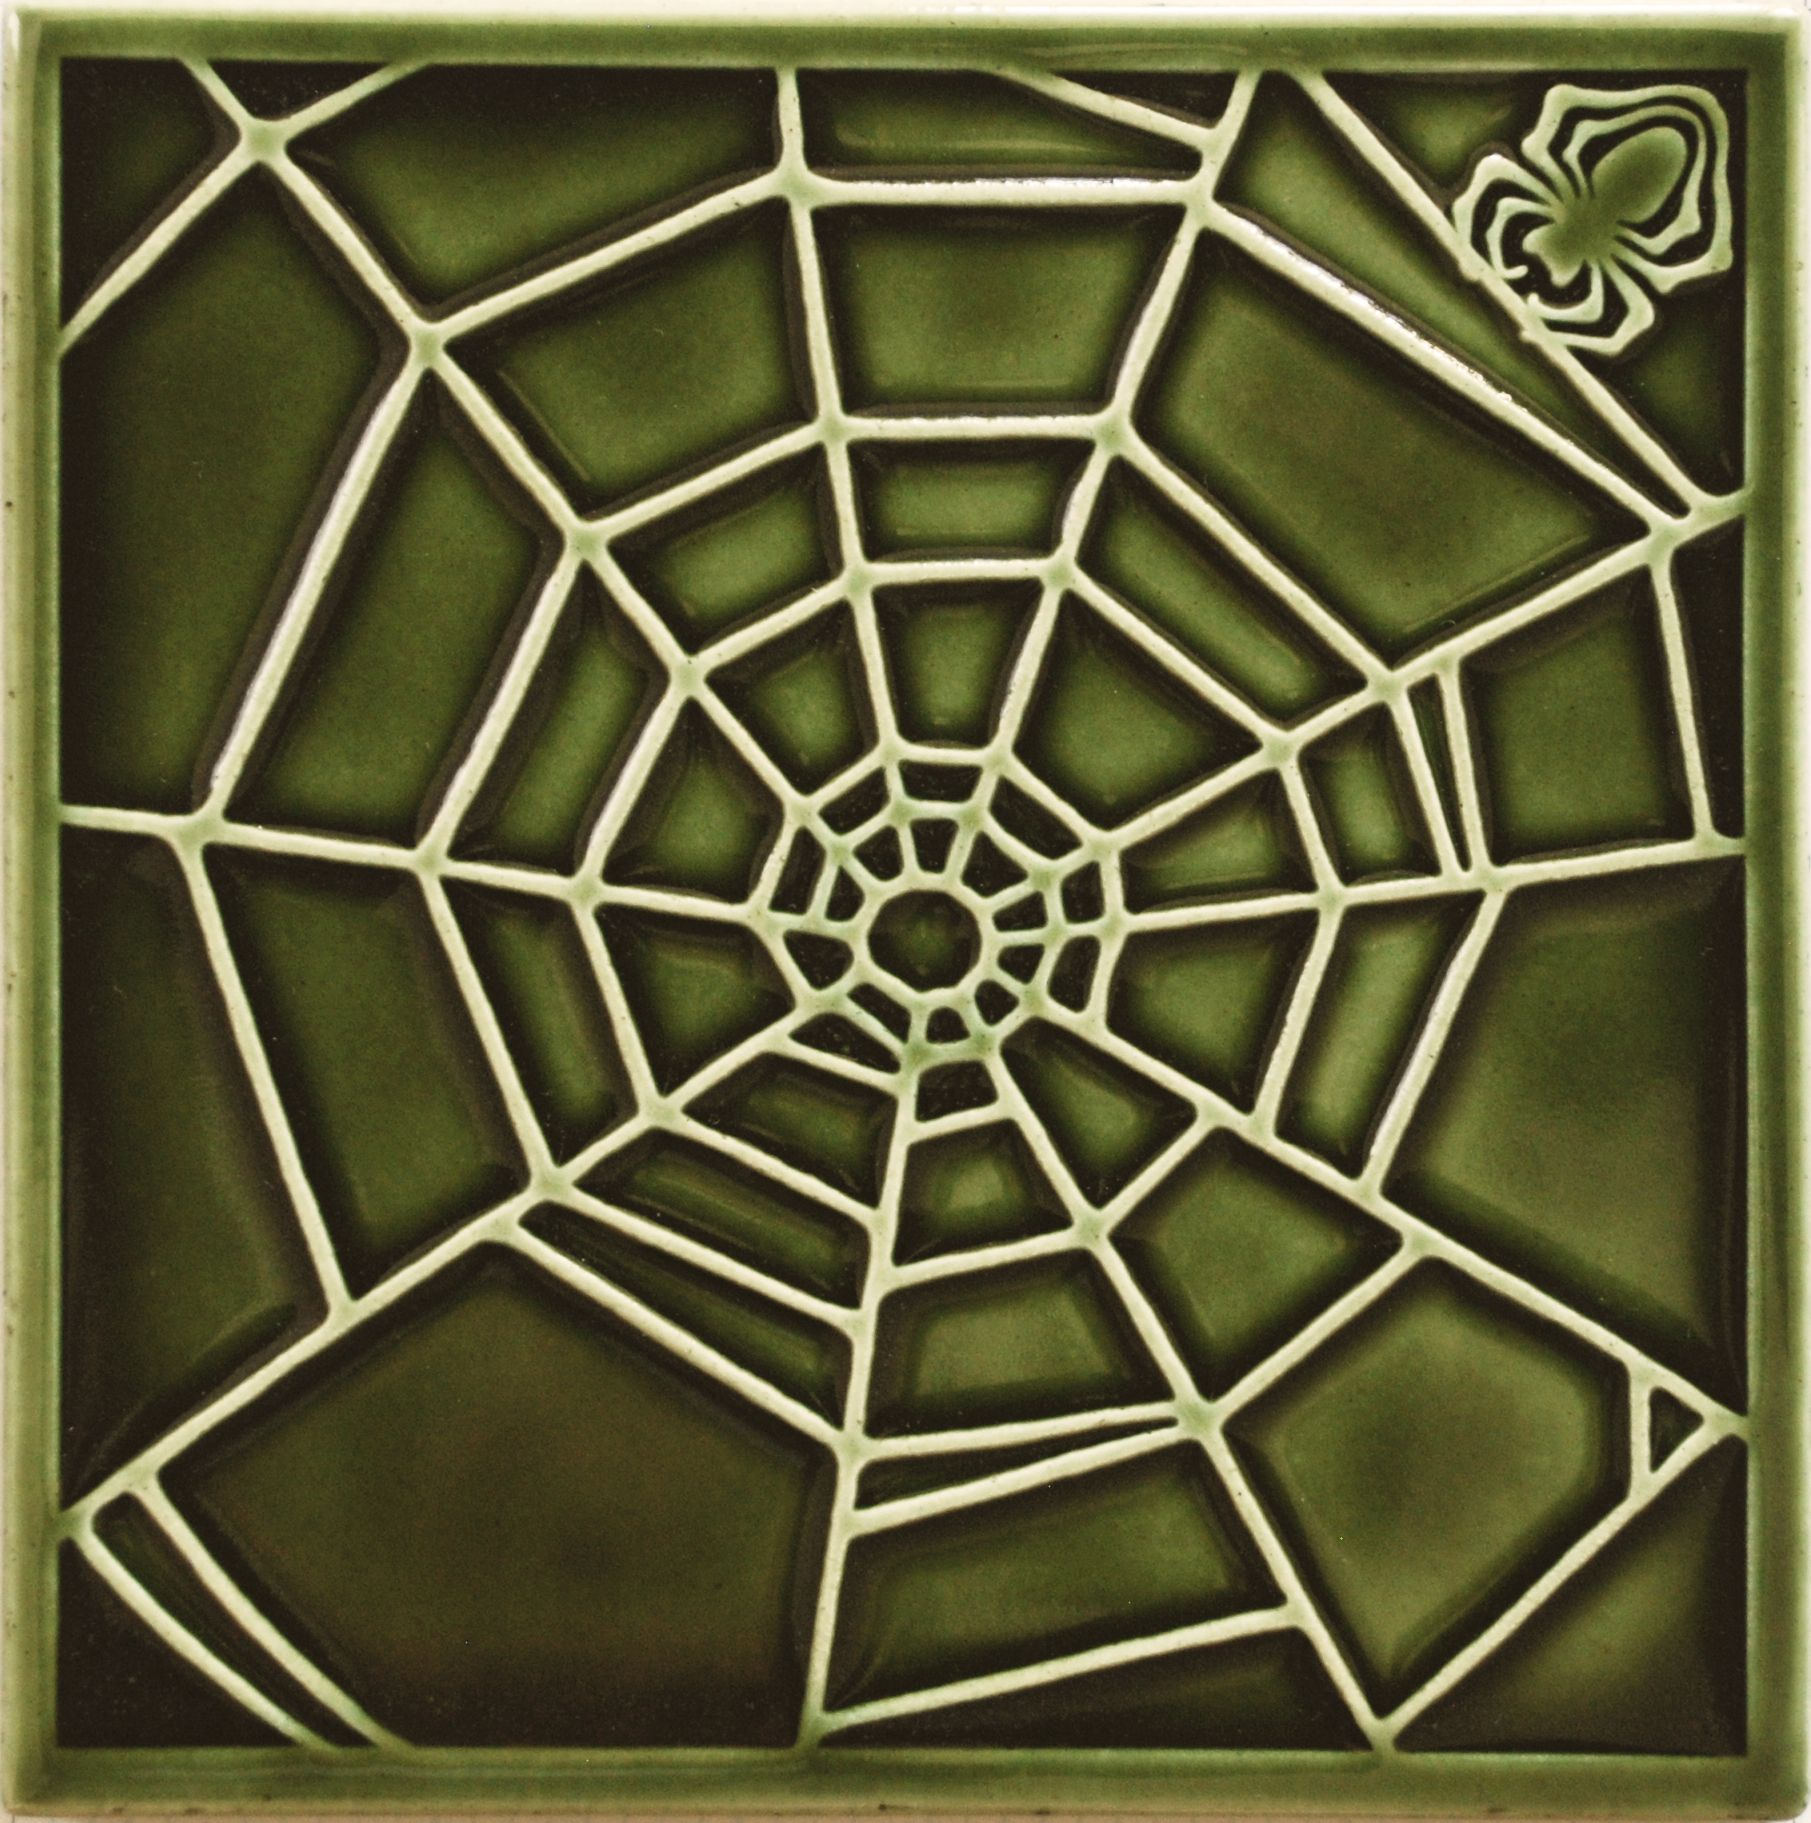 Arts and crafts tile by carreaux du nord tile the spider